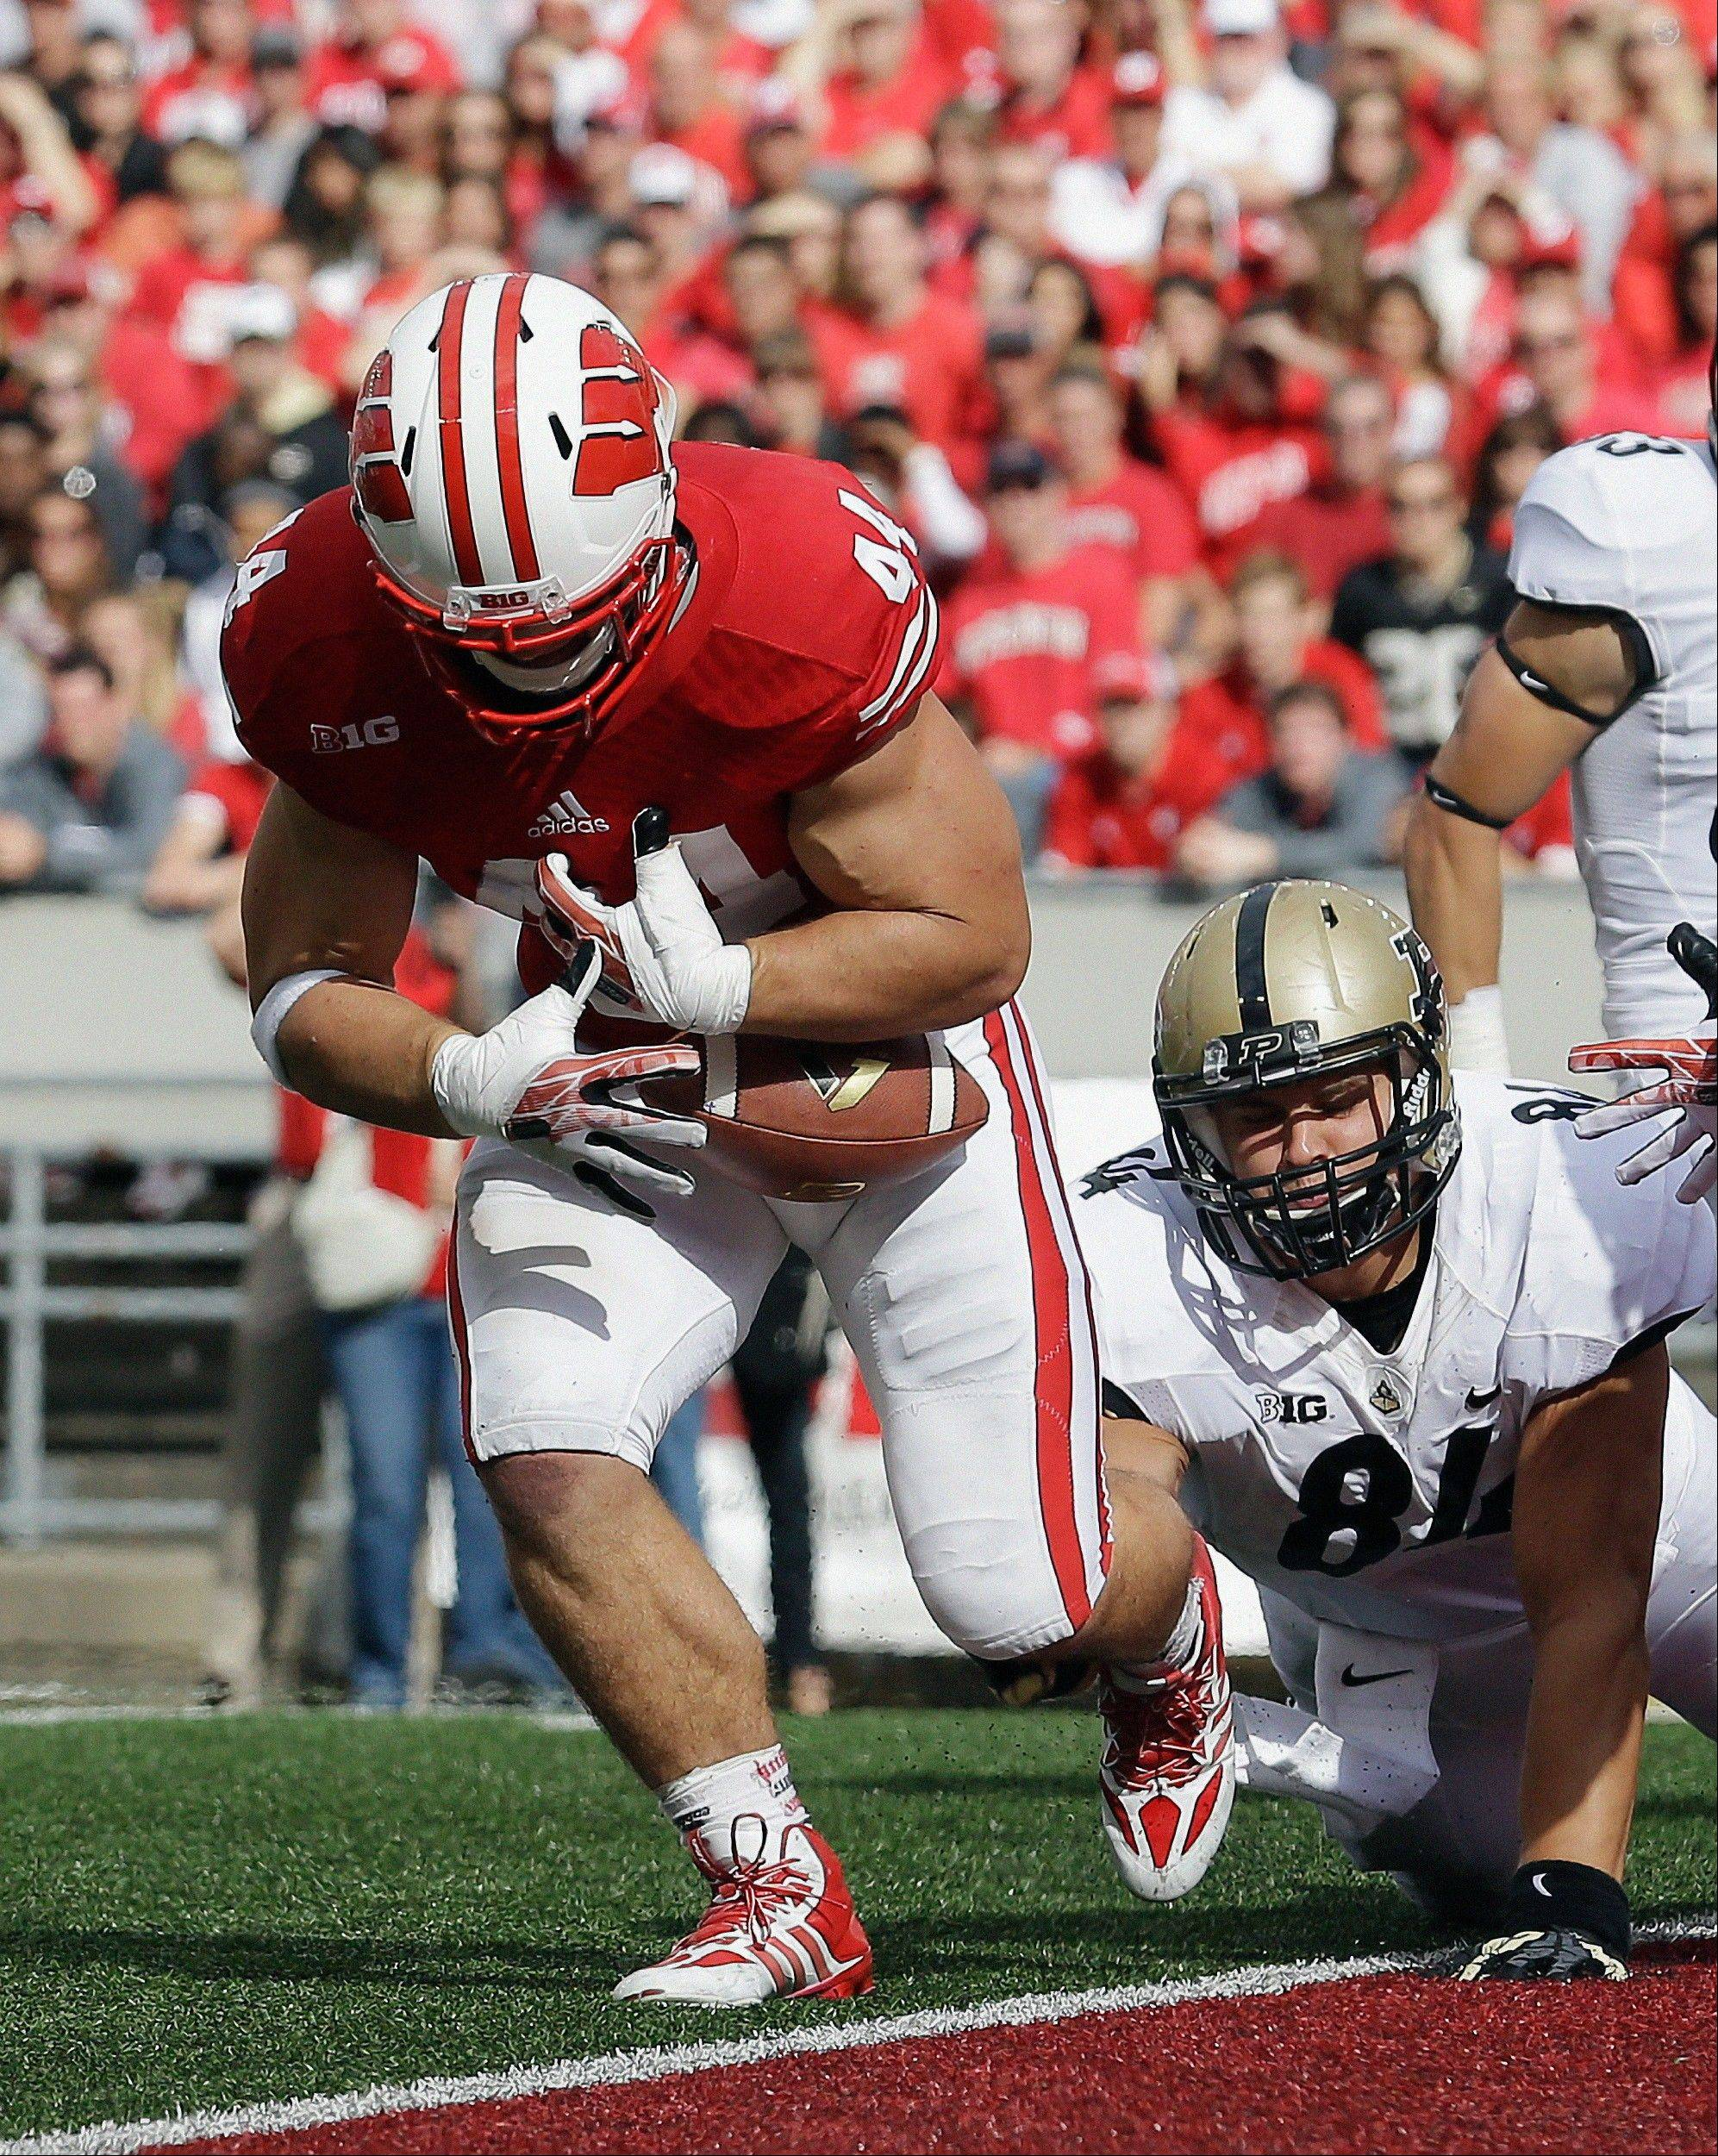 Wisconsin�s Chris Borland nearly intercepts a pass in front of Purdue�s Justin Sinz during the first half Saturday�s game in Madison.